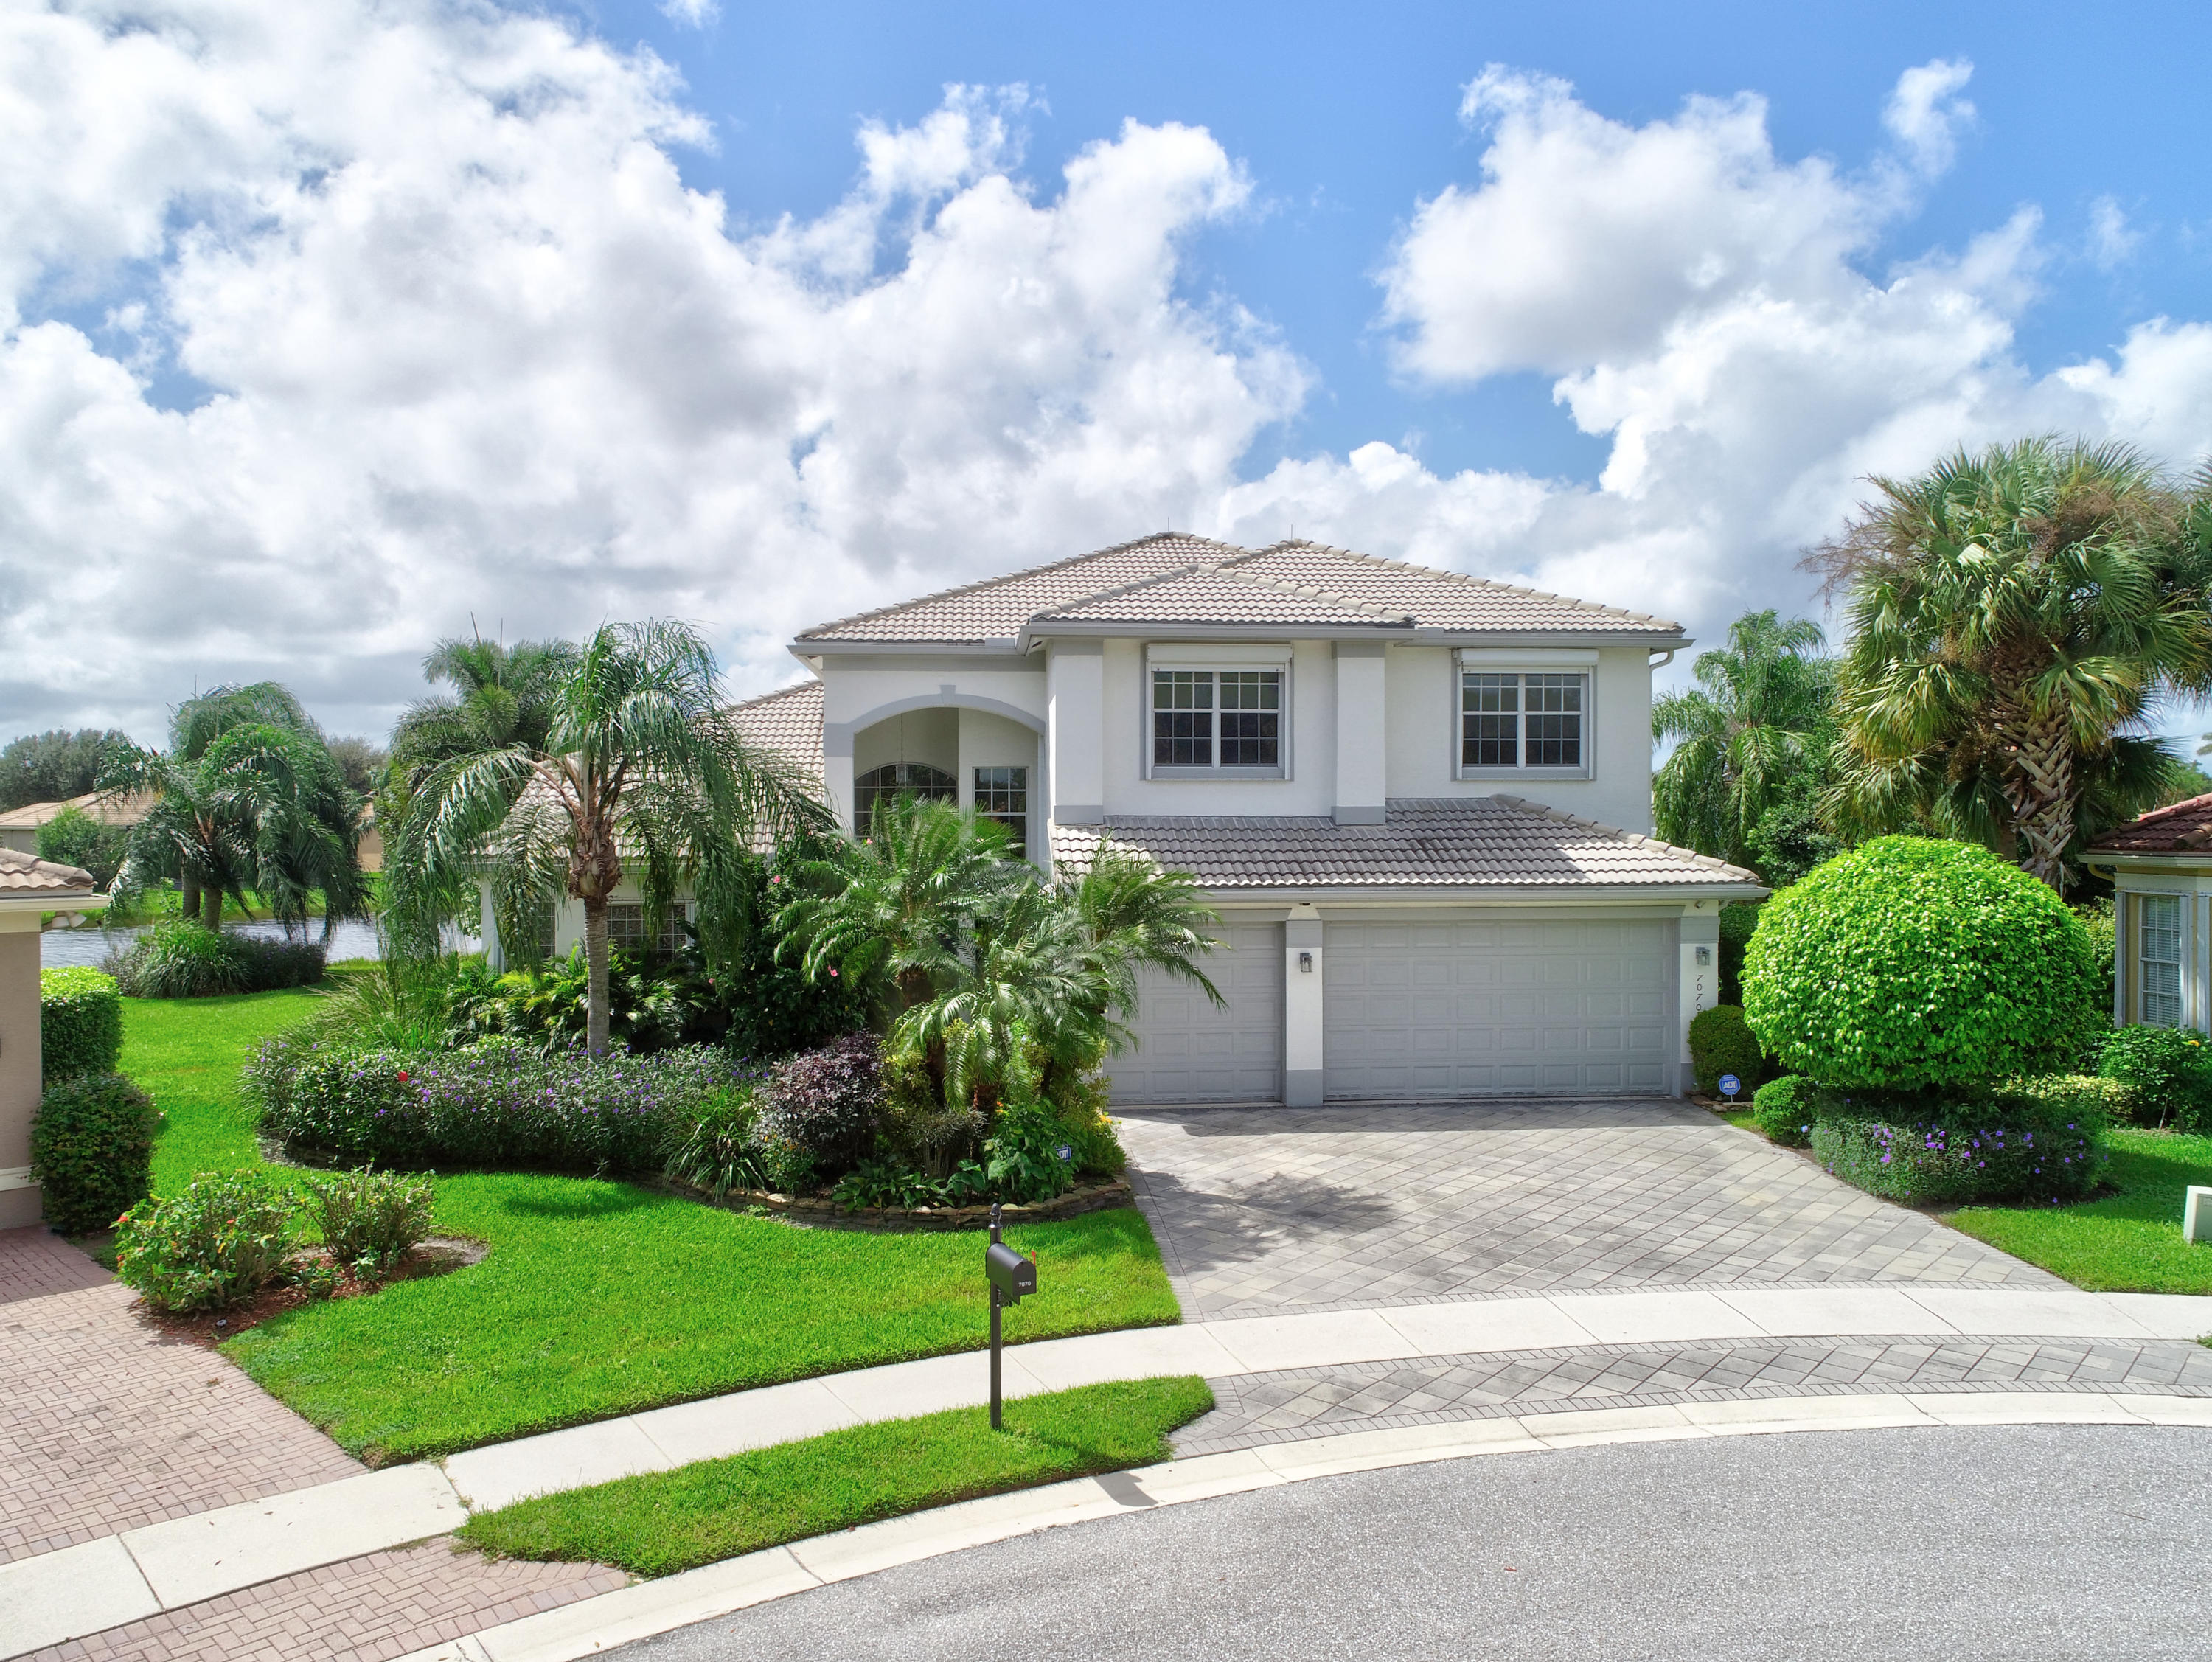 Photo of 7070 Springville Cv Cove, Boynton Beach, FL 33437